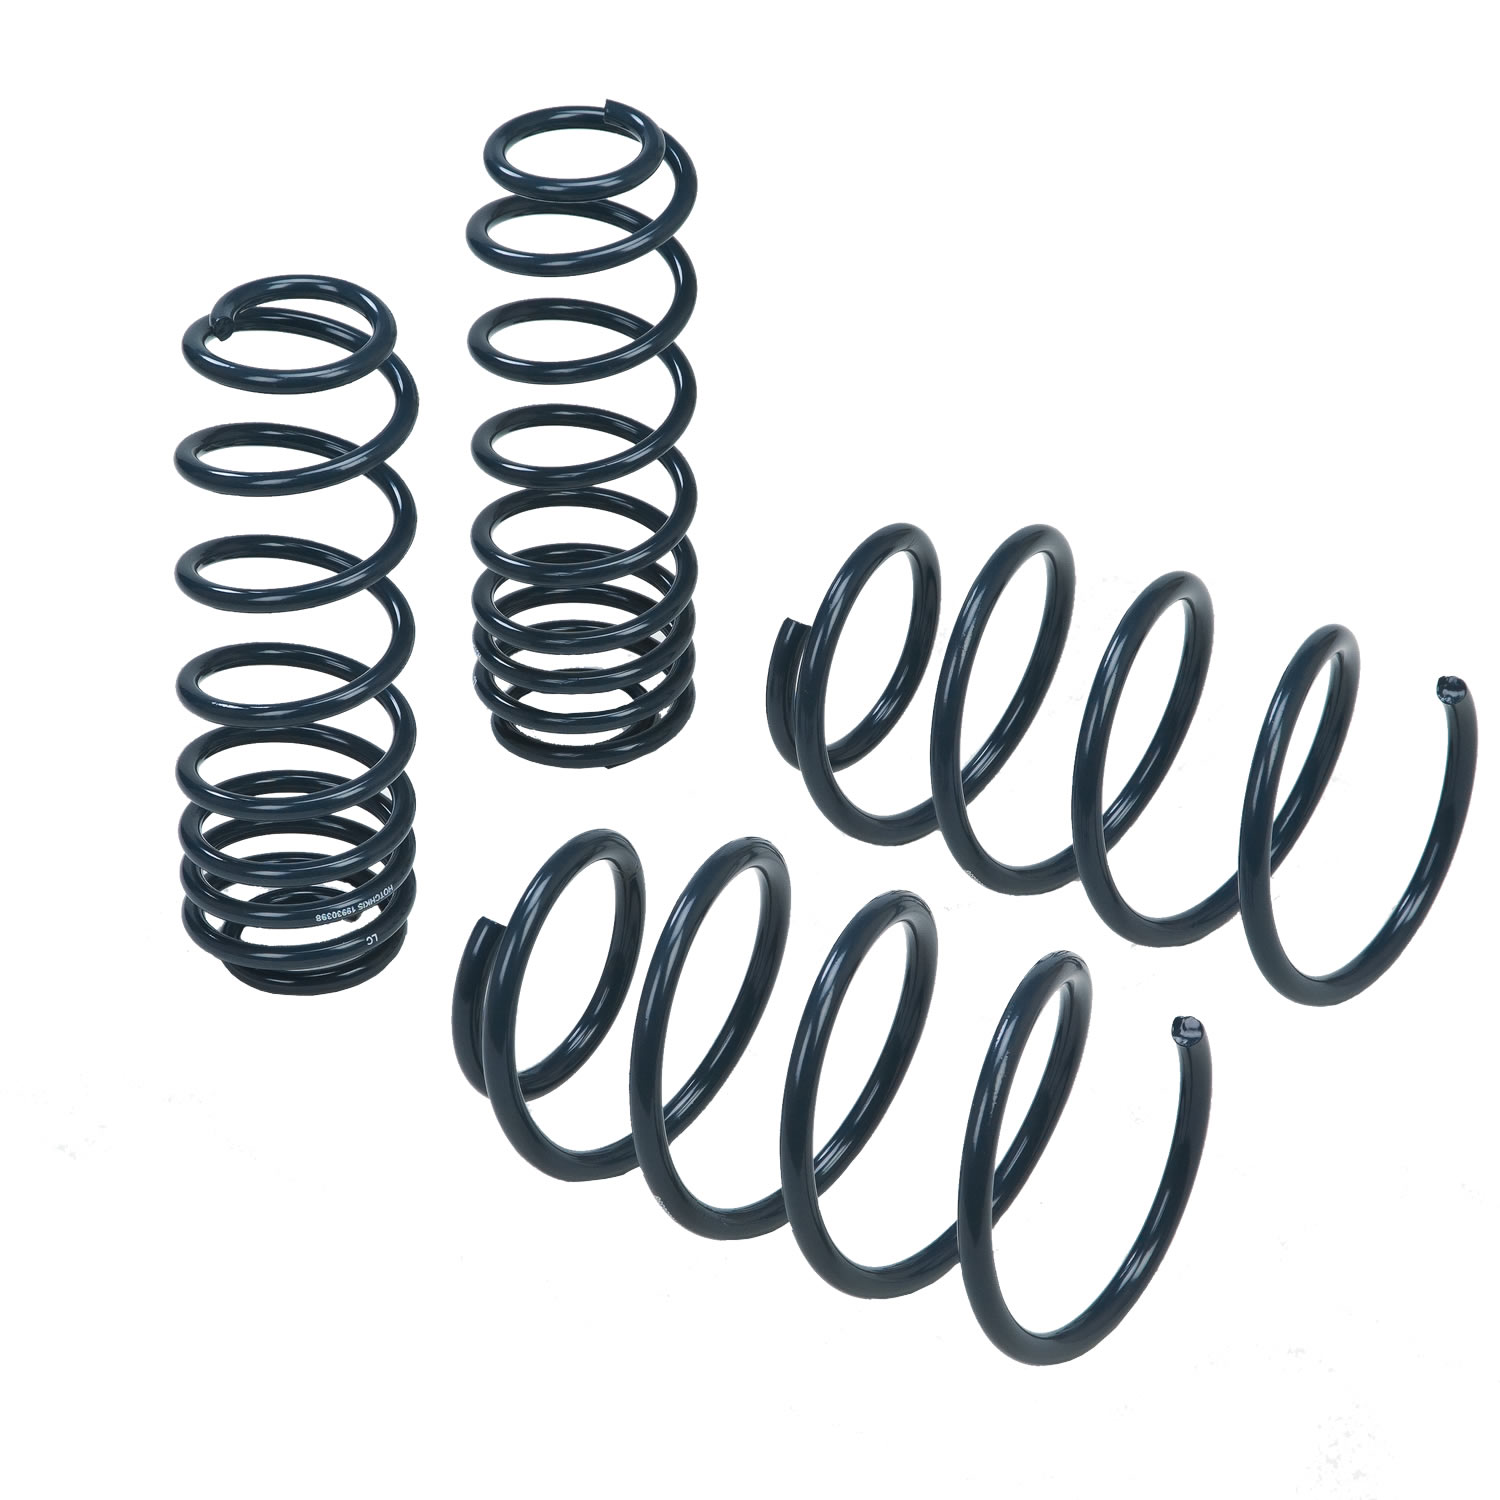 2011-2014 Mustang 5.0L Sport Coil Springs from Hotchkis Sport Suspension